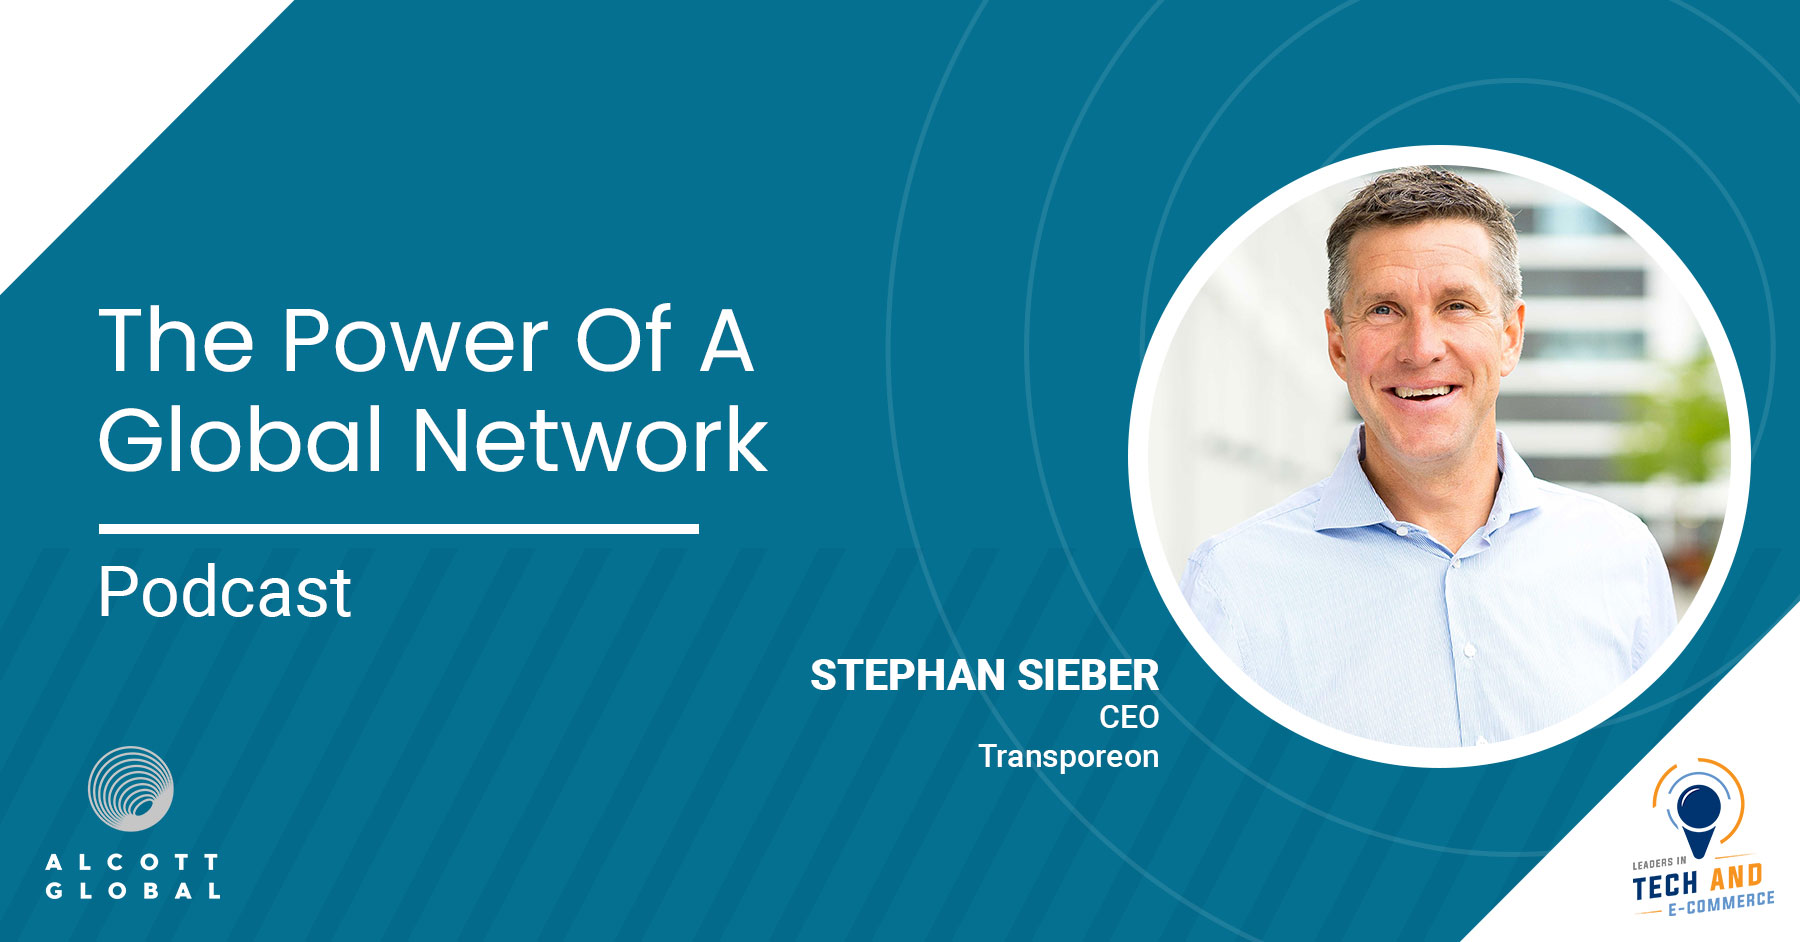 The Power of a Global Network with Stephan Sieber CEO of Transporeon Featured Image